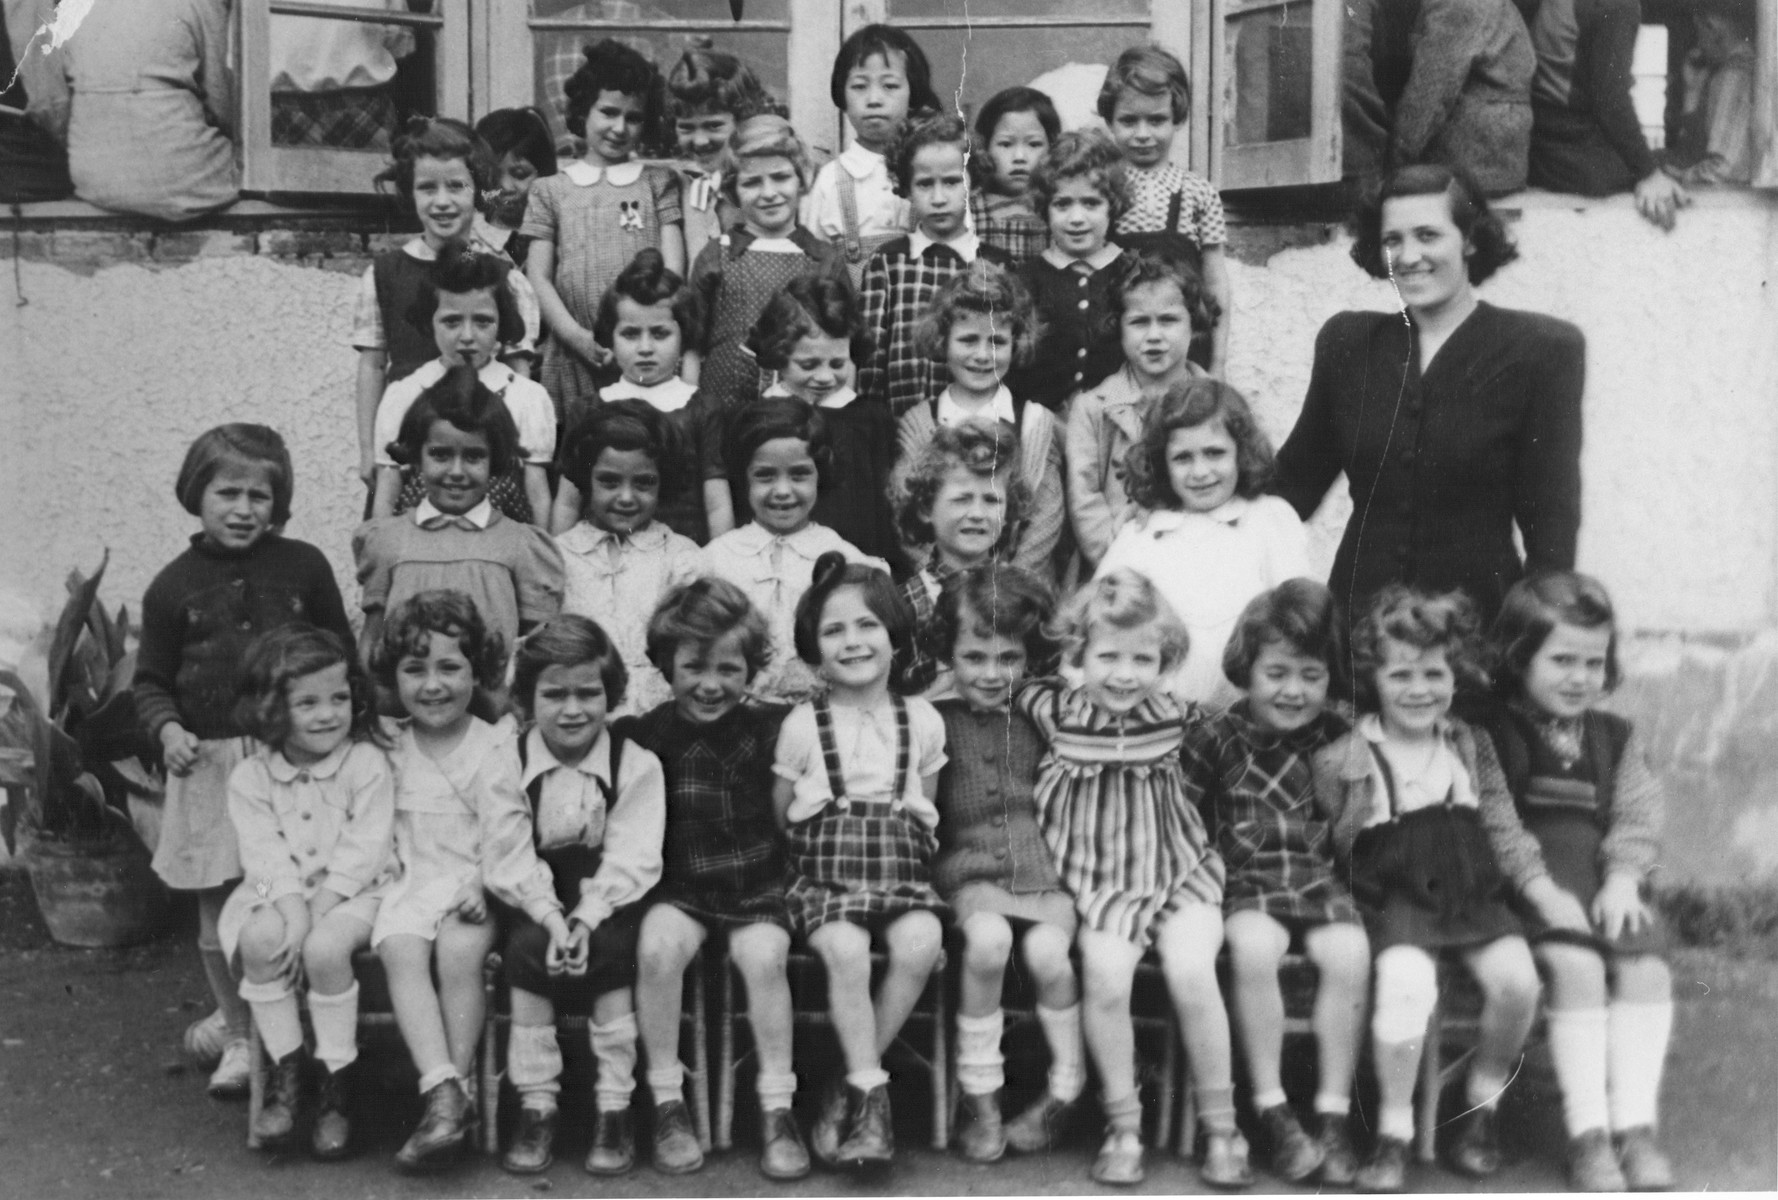 First grade class of the Kadoori School in Shanghai.  Sonja Kripps is standing on the top row at the far left.  Third row (second and third from the left) are the Bayer twins.  Naomi Strauss is second row, center.  The teacher, standing on the right, is Felicia Lewinski.